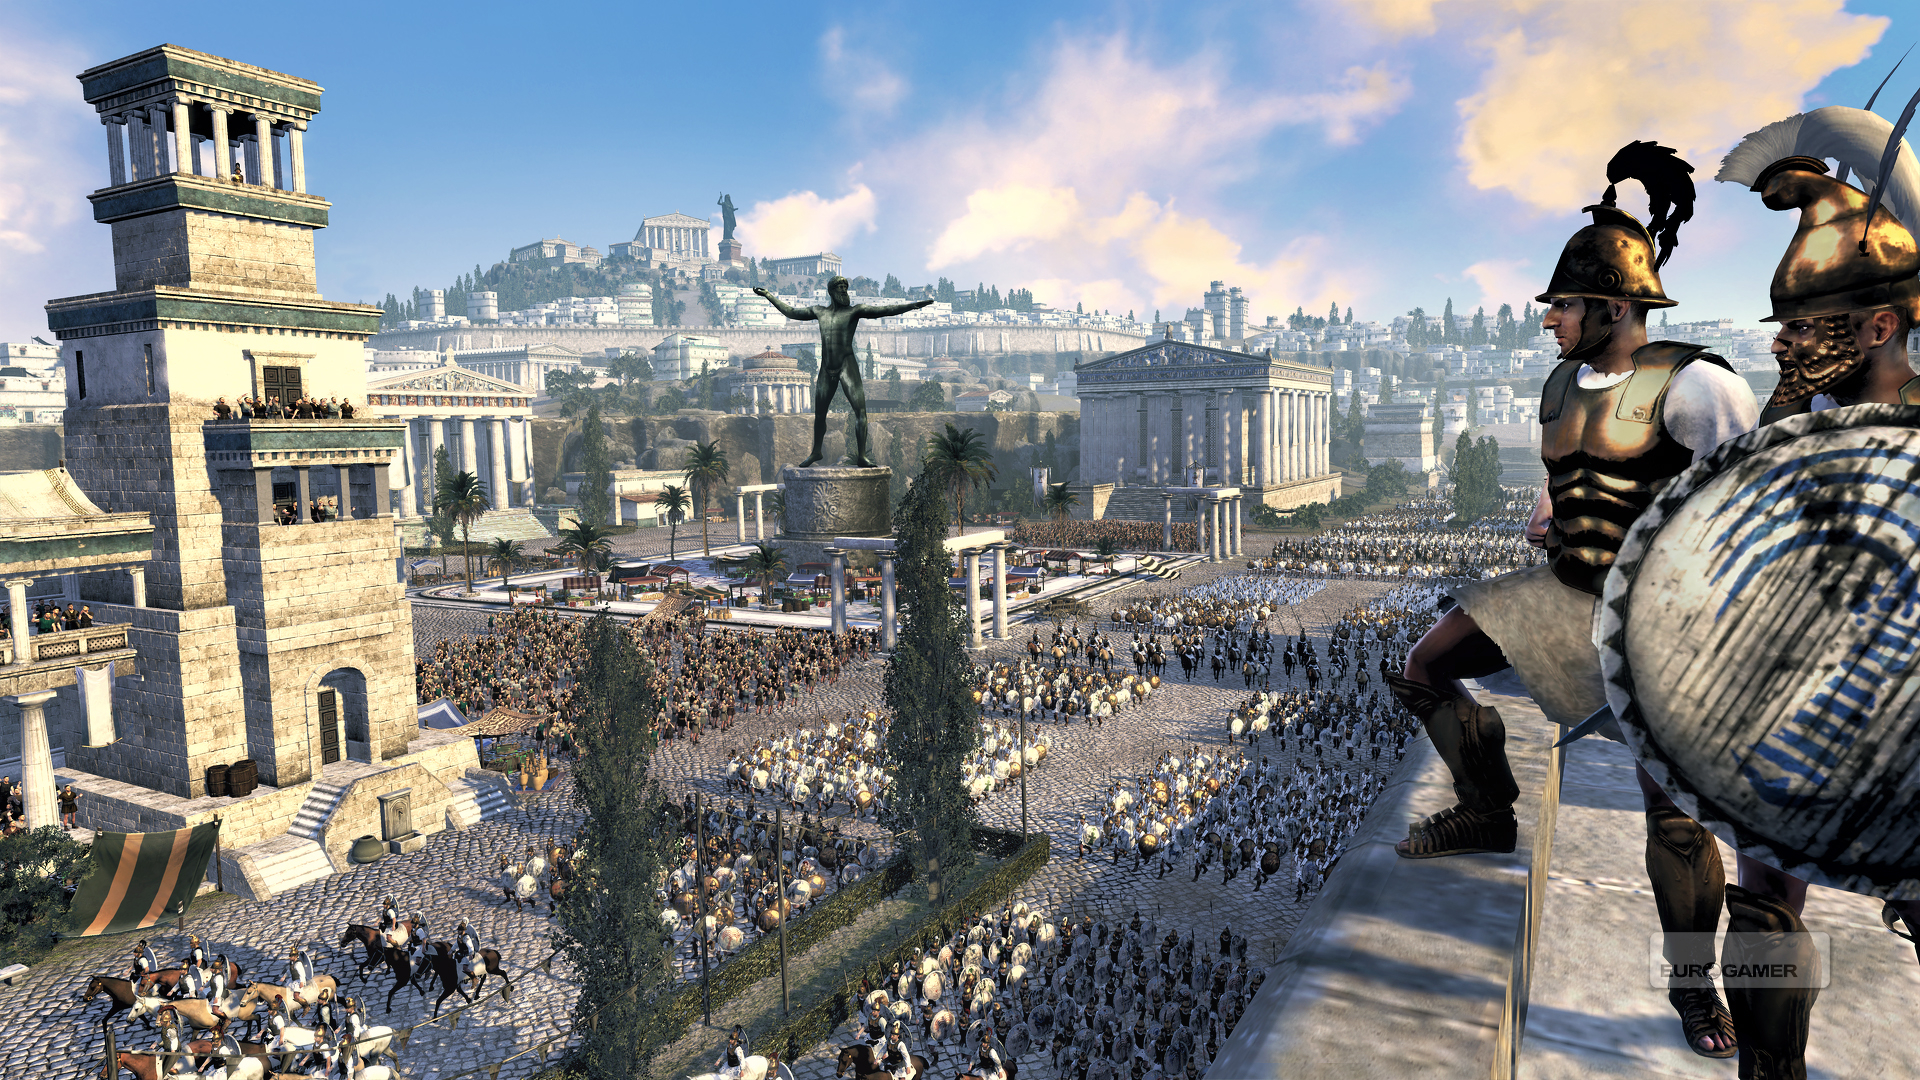 Total War Rome 2 desktop wallpaper 27 of 183 Video Game 1920x1080